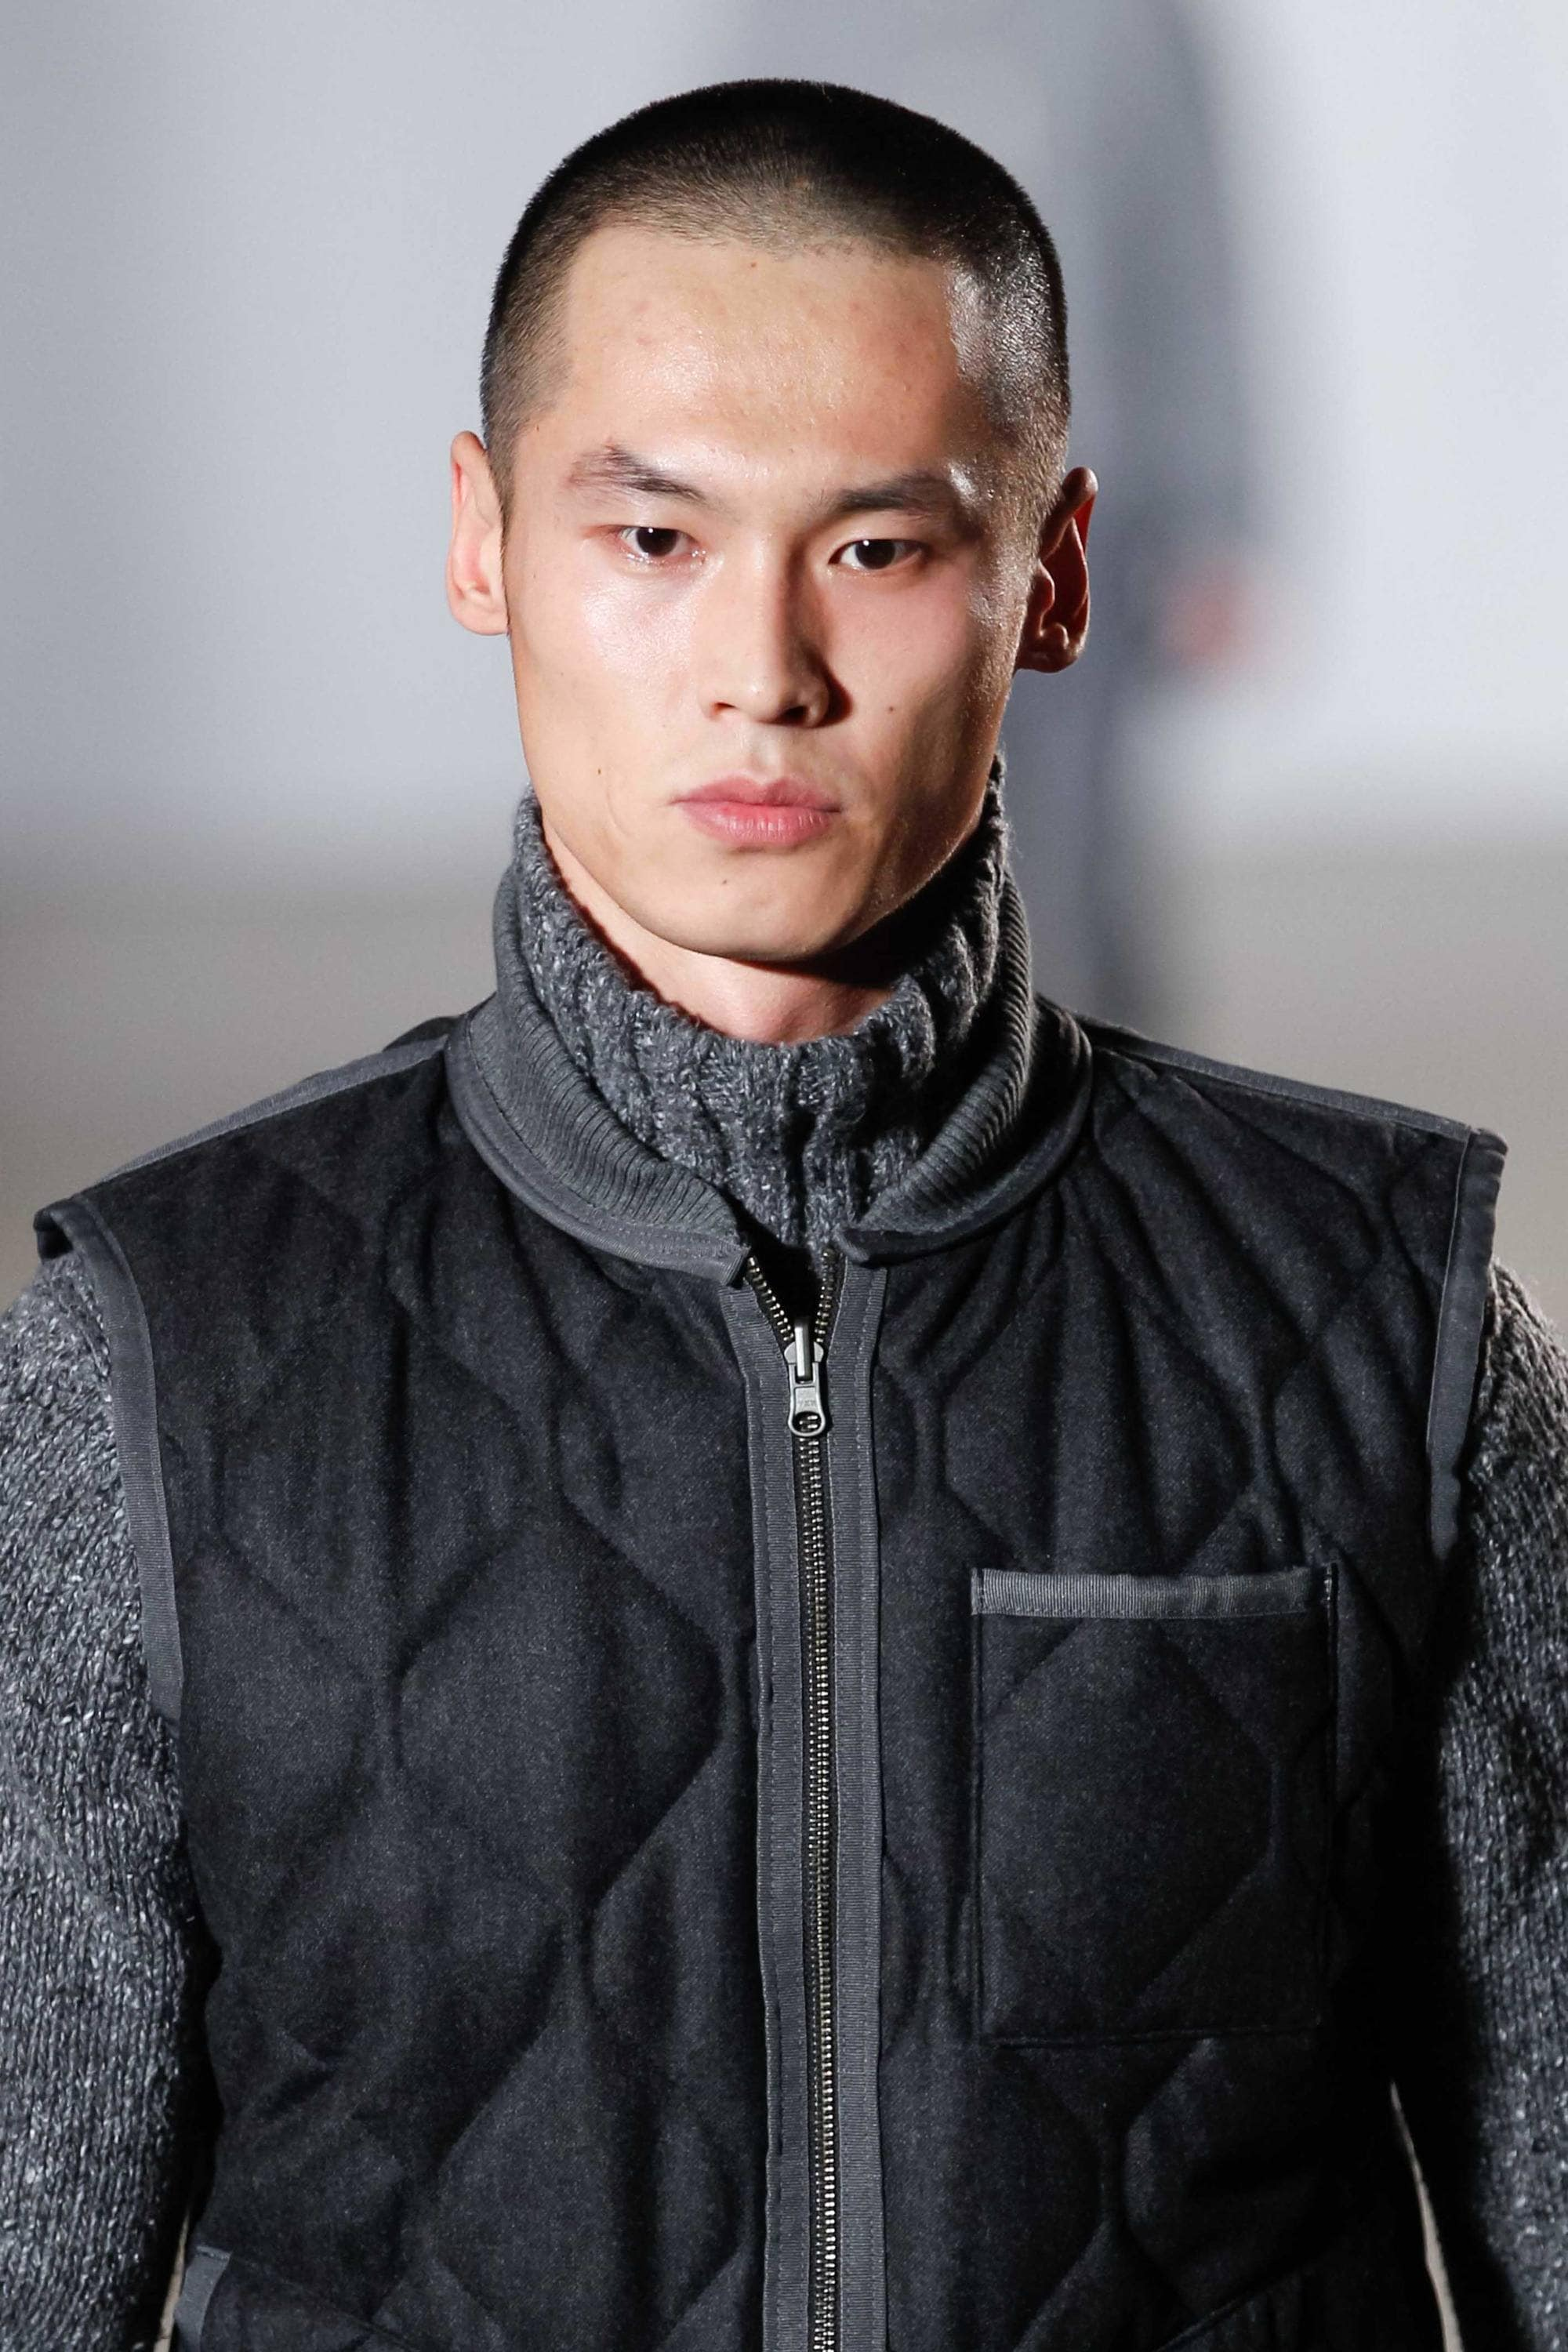 Asian men hairstyles: buzz cut